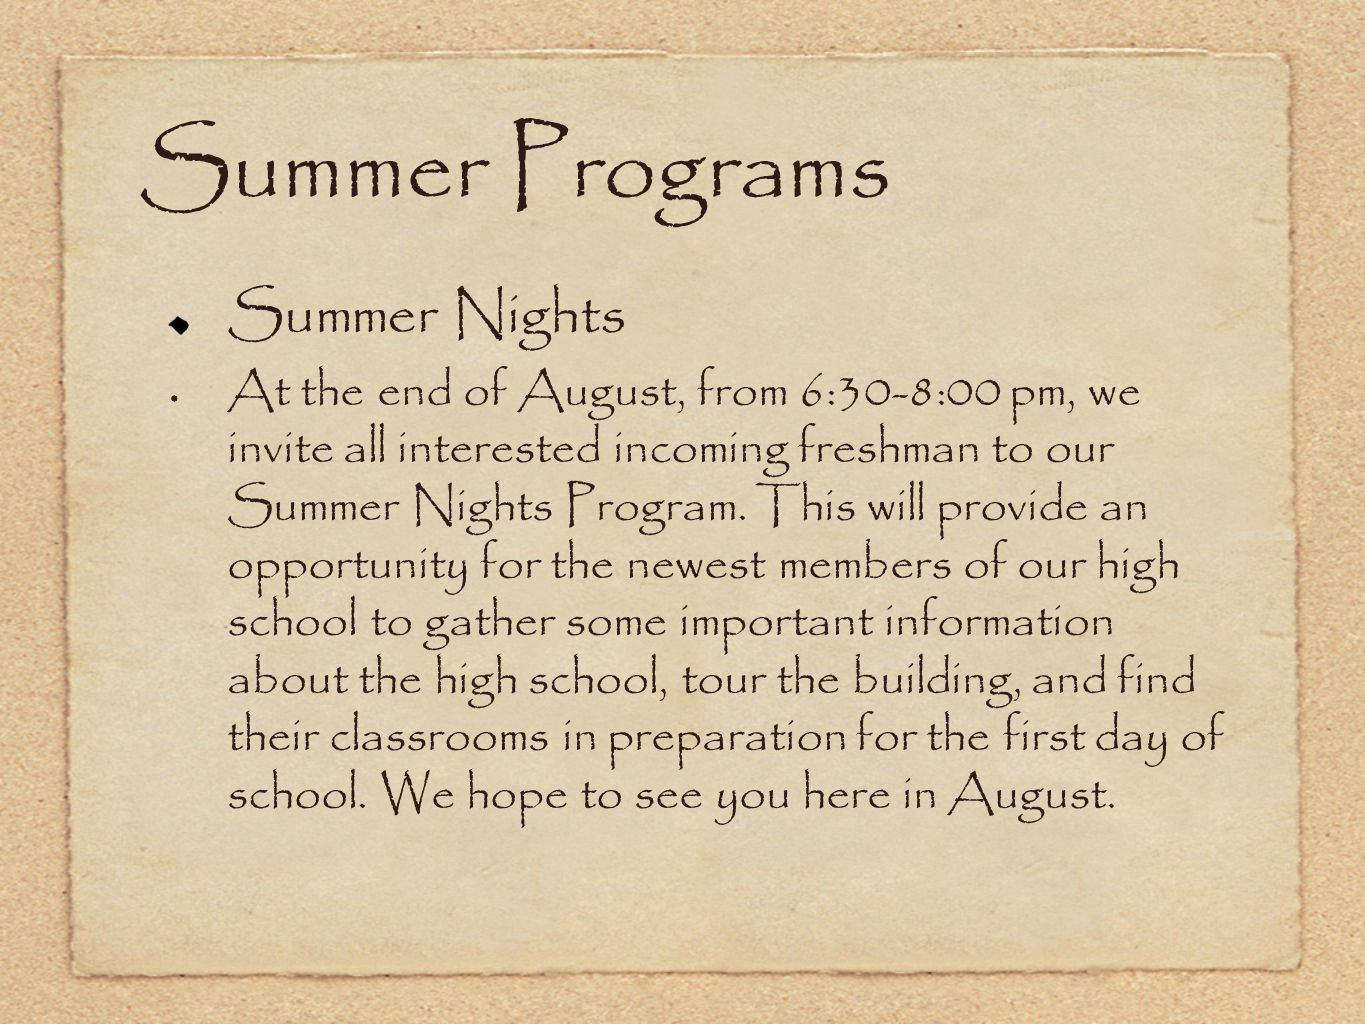 Summer Programs Summer Nights